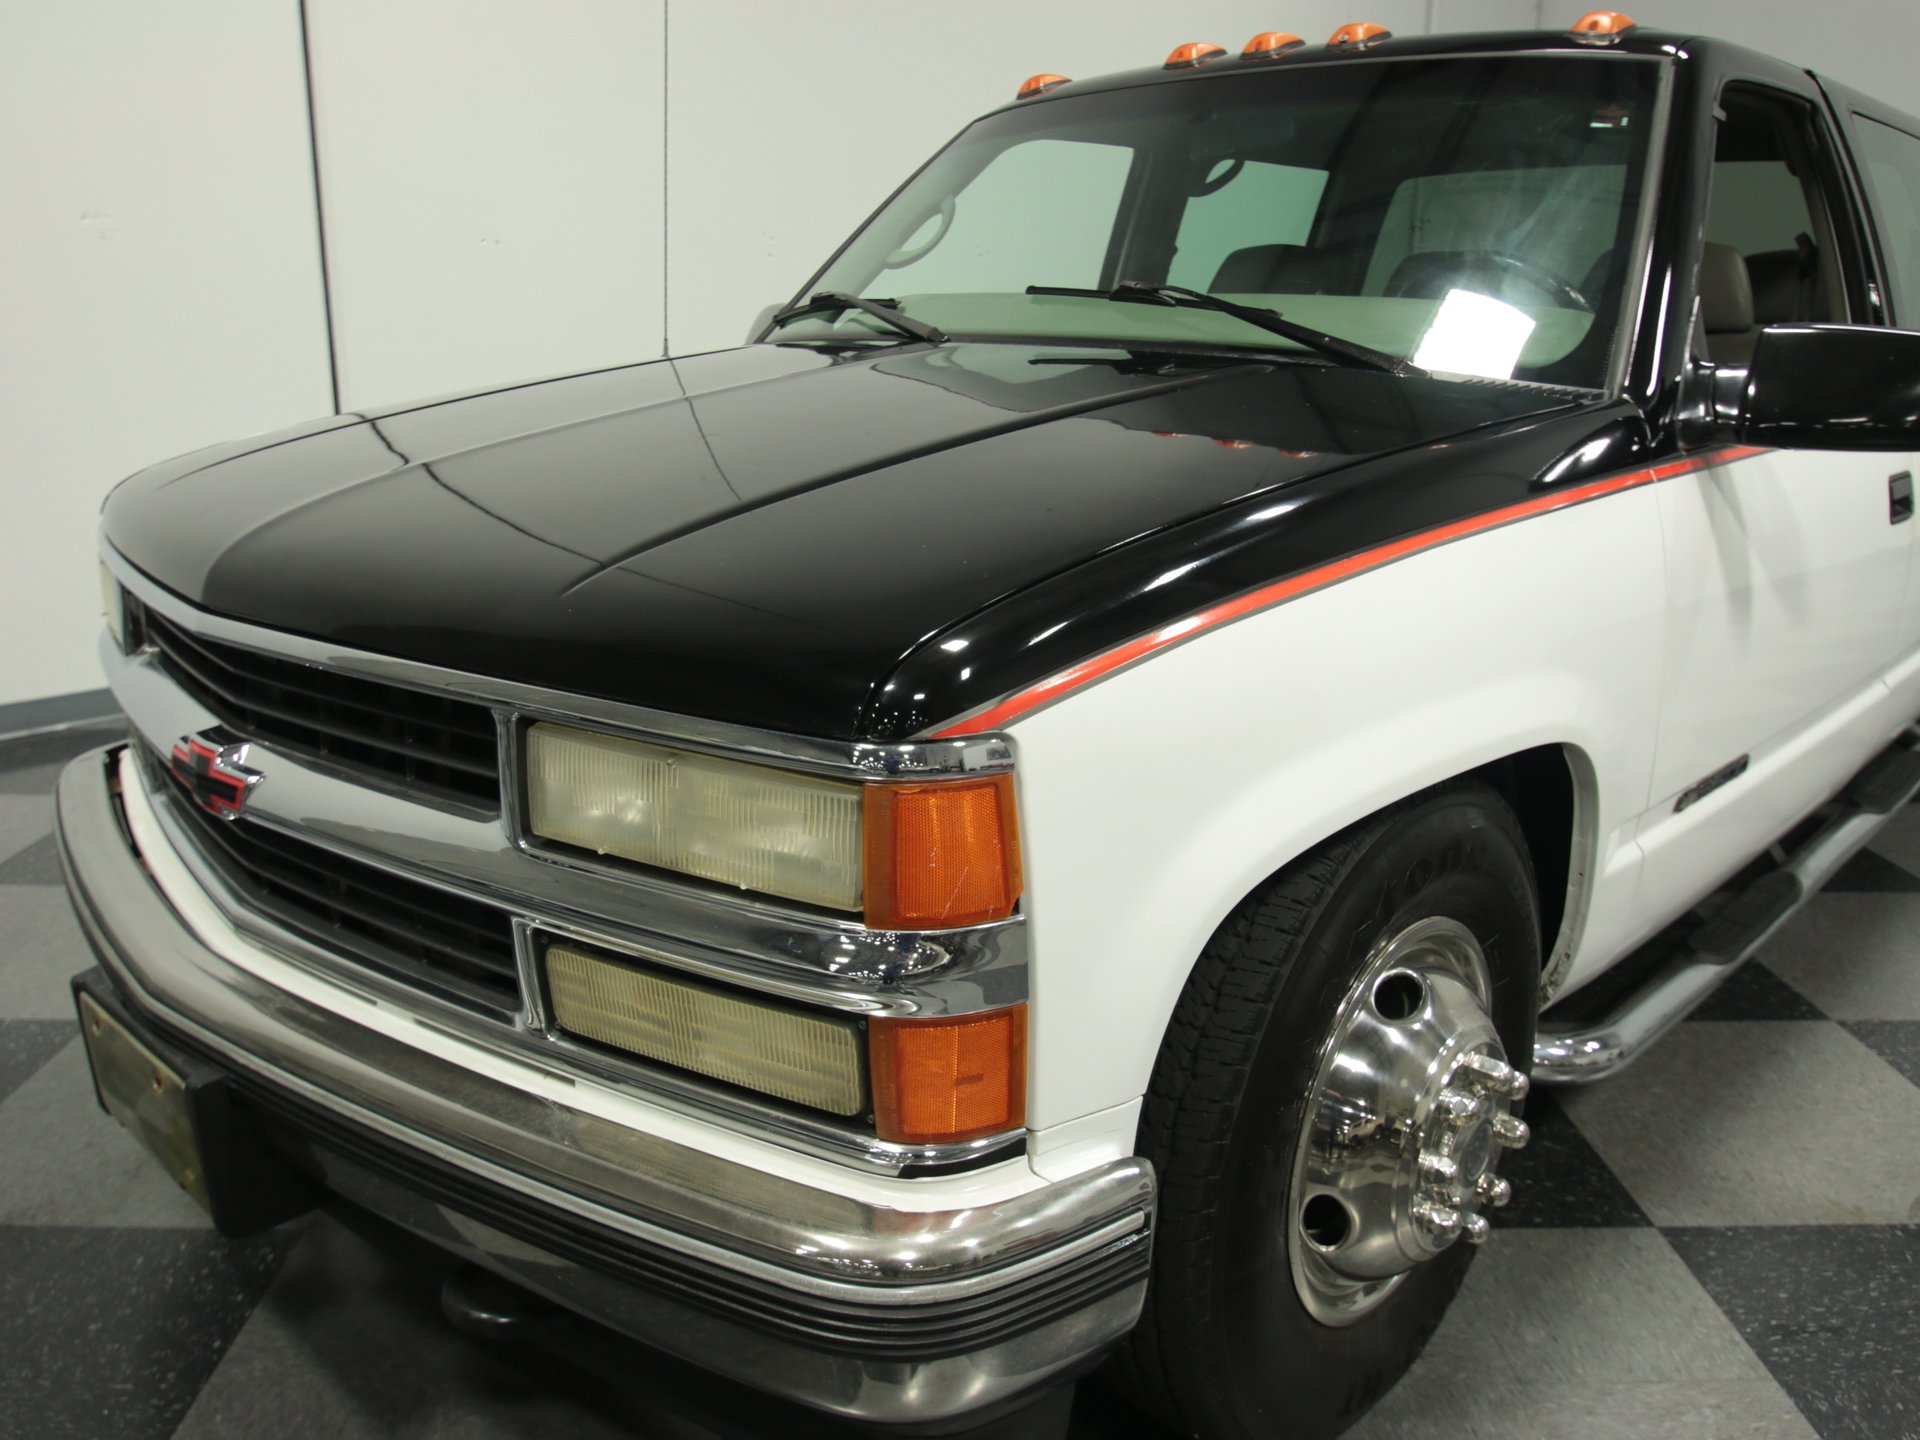 1999 Chevrolet 3500 | Streetside Classics - The Nation's